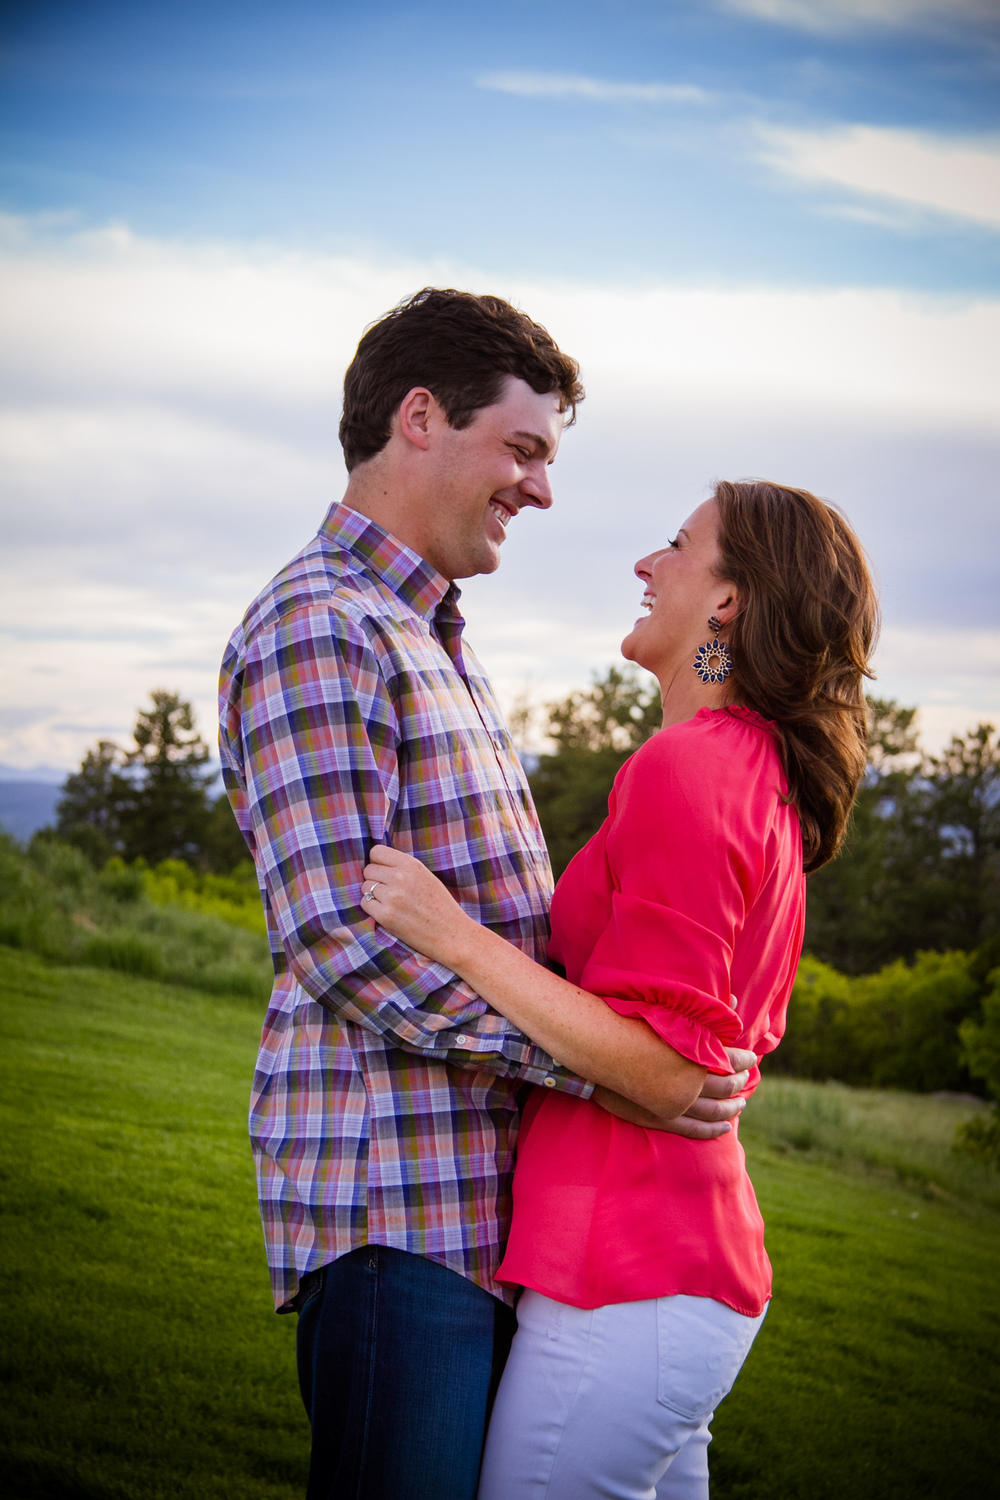 Castle_Pines_Colorado'_Engagement_Photos_011.JPG